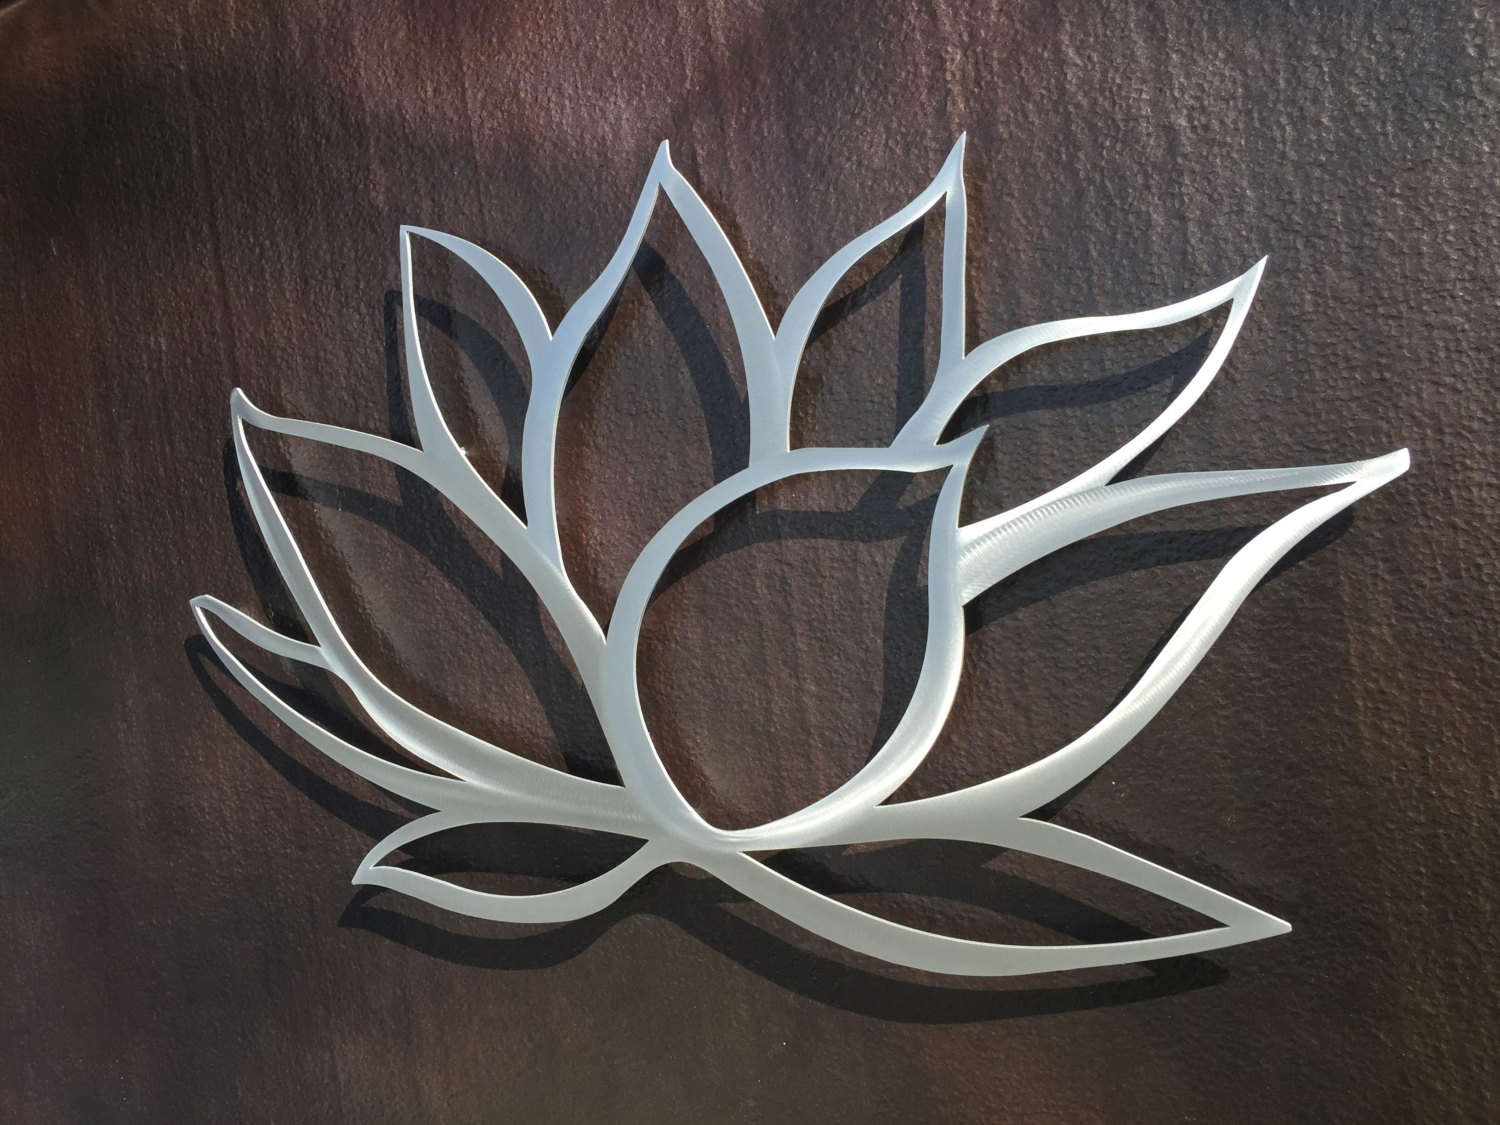 Download Metal Wall Artwork | Himalayantrexplorers Pertaining To Latest Abstract Flower Metal Wall Art (View 4 of 20)